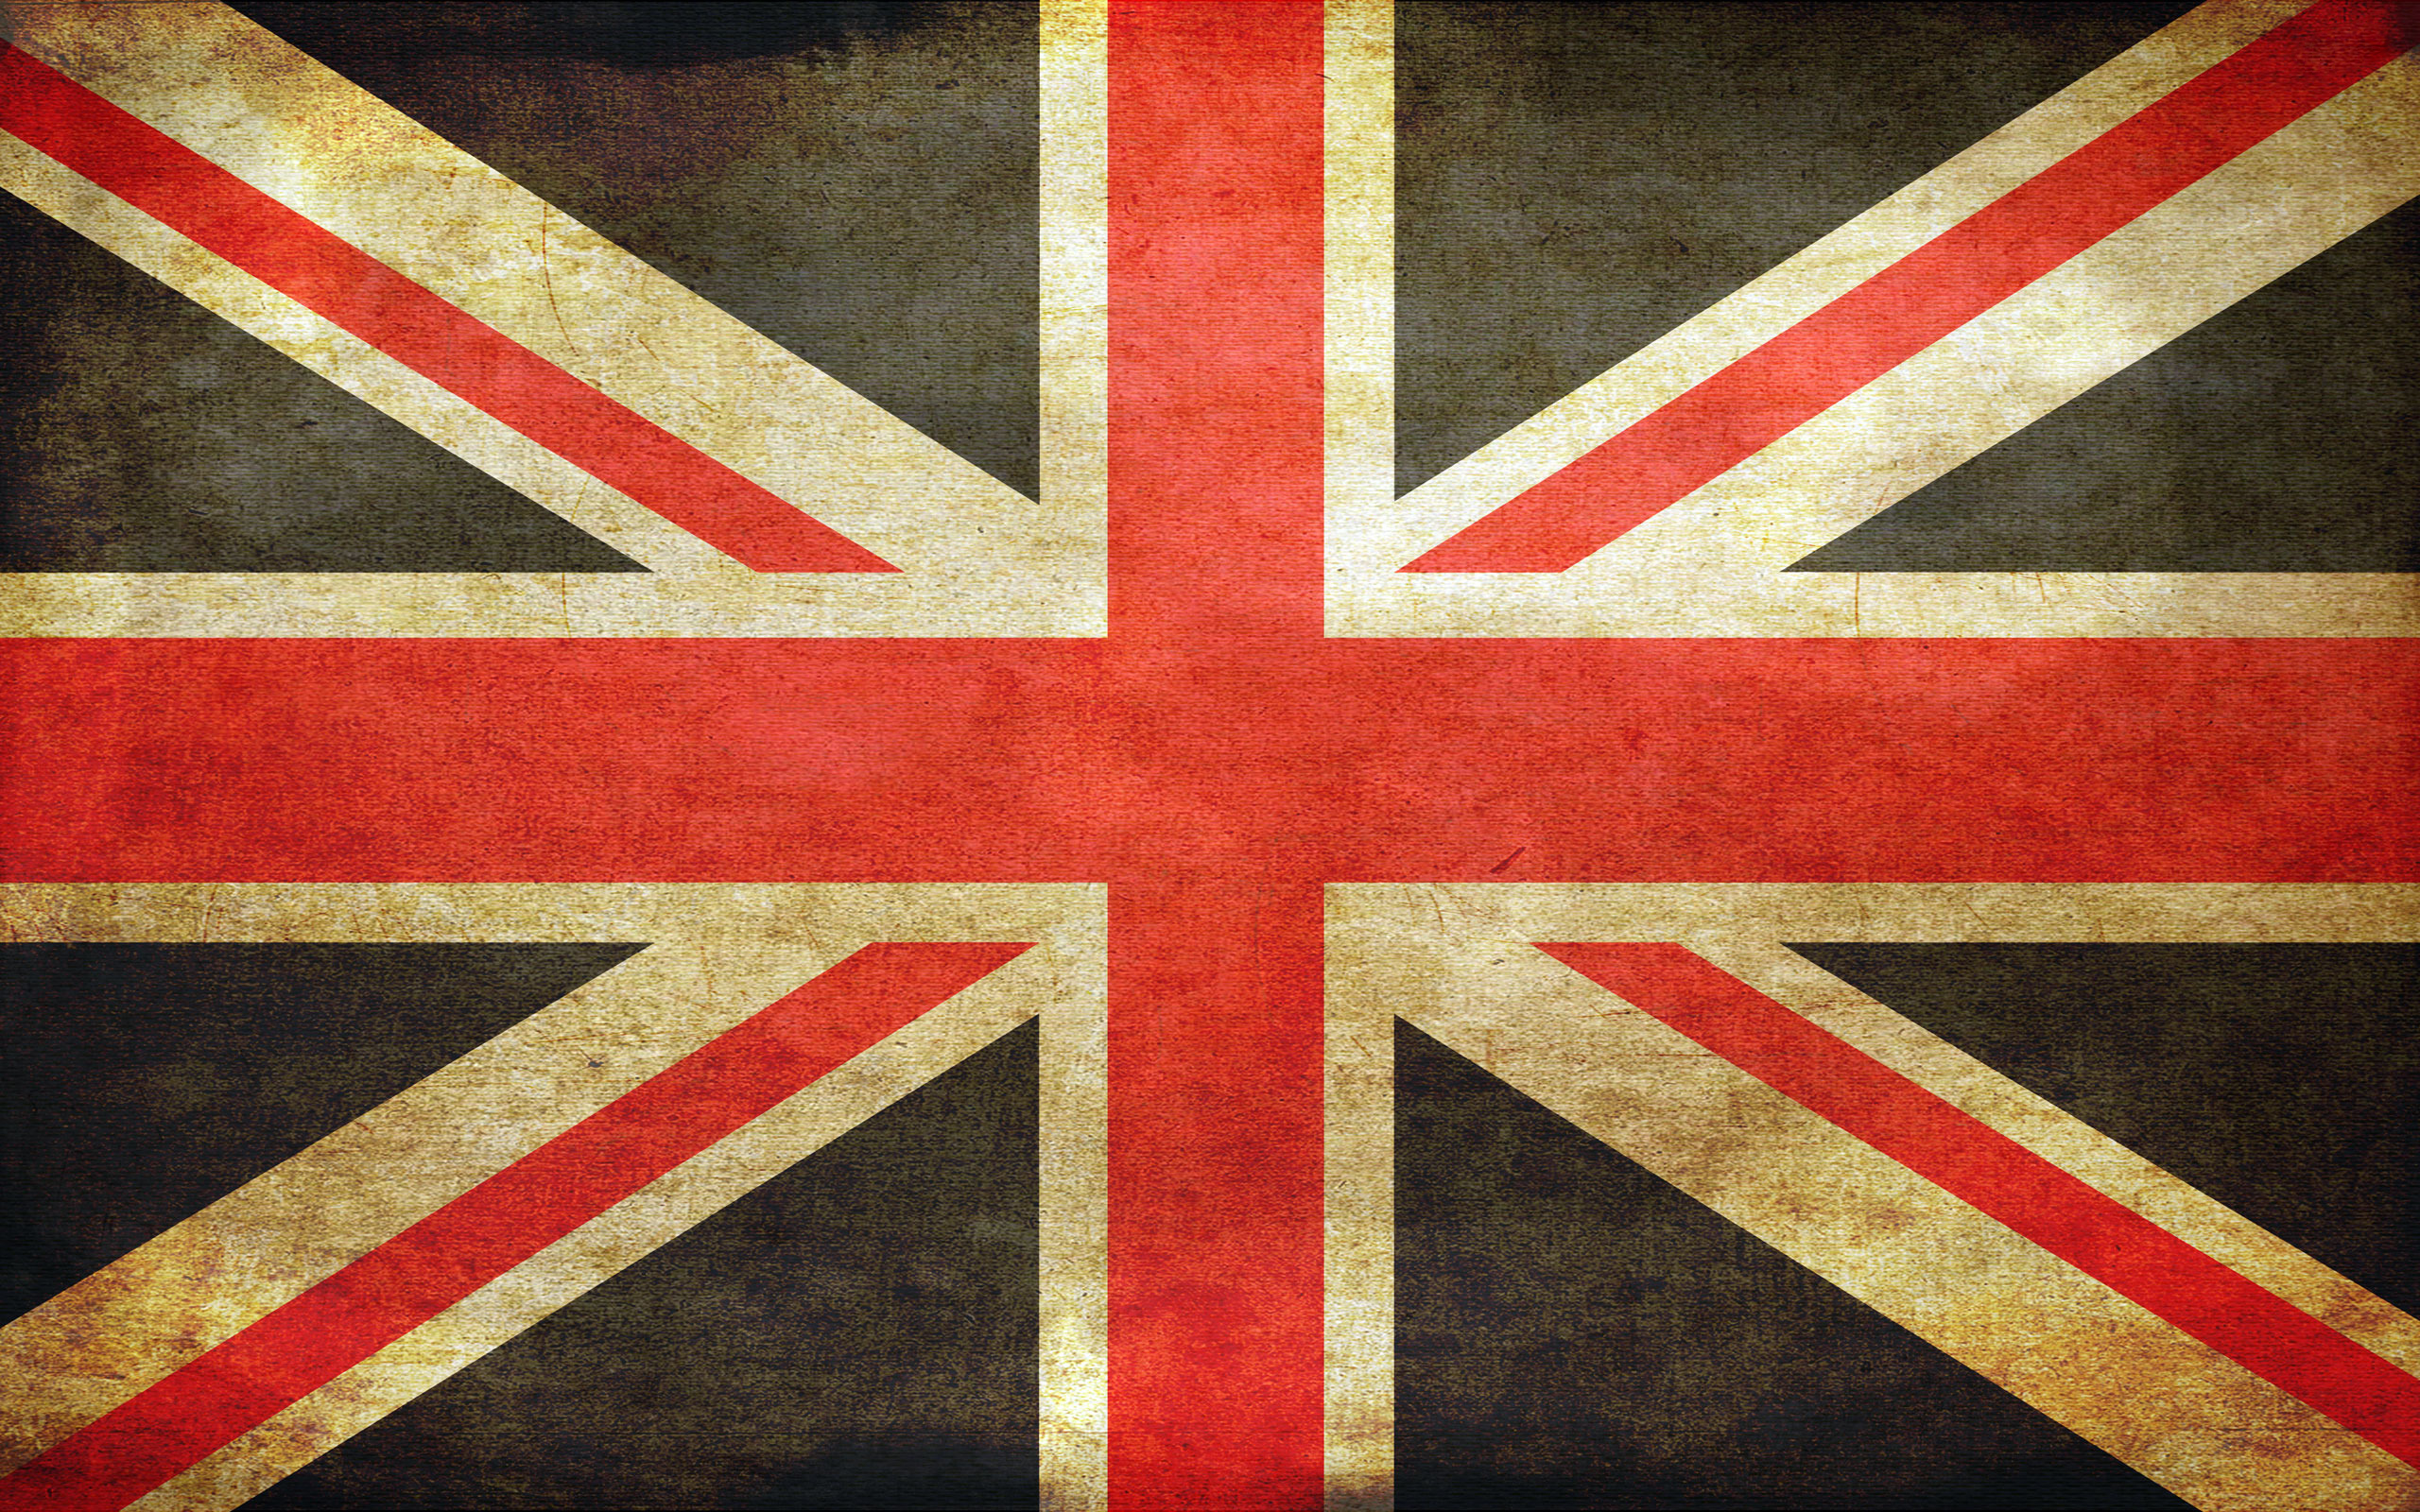 Teppich Union Jack Vintage Flag Of United Kingdom Full Hd Fond D 39écran And Arrière